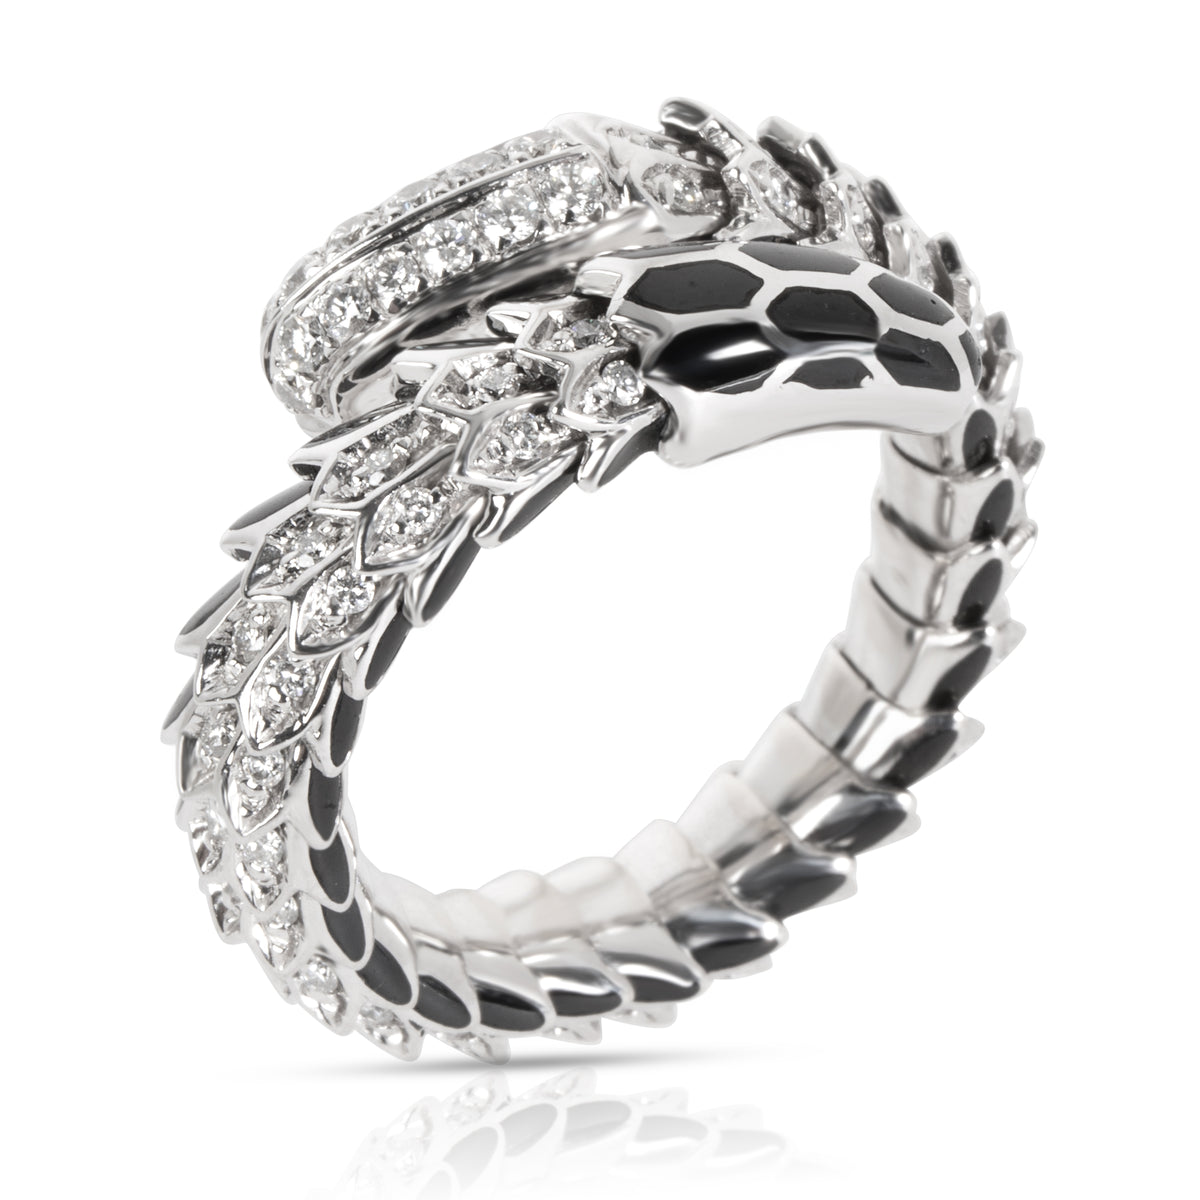 Roberto Coin Black Enamel & Diamond Cobra Ring in 18KT White Gold 0.5 CTW